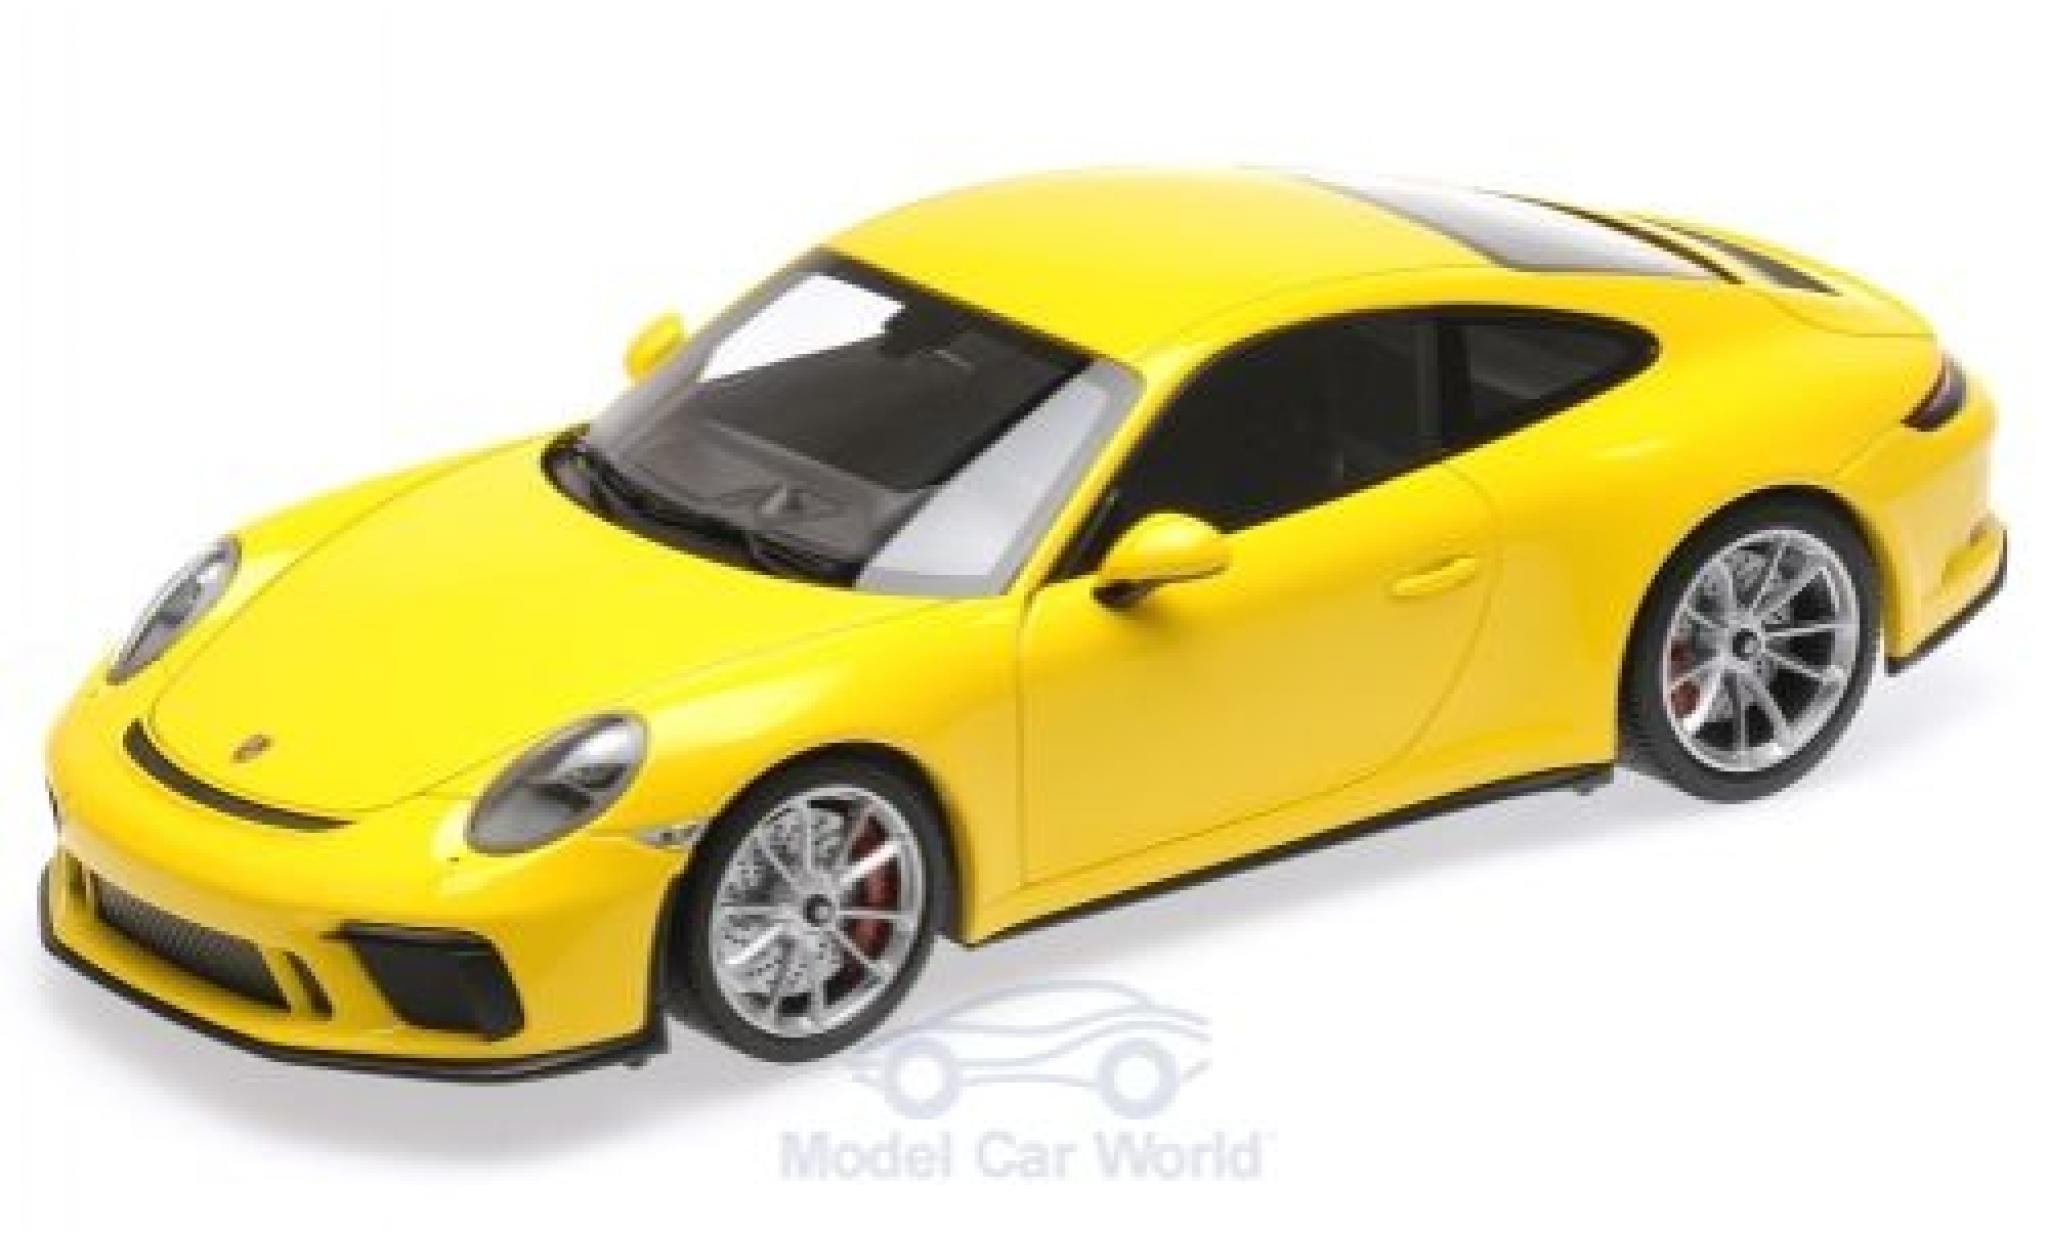 Porsche 911 1/18 Minichamps (991.II) GT3 Touring yellow 2018